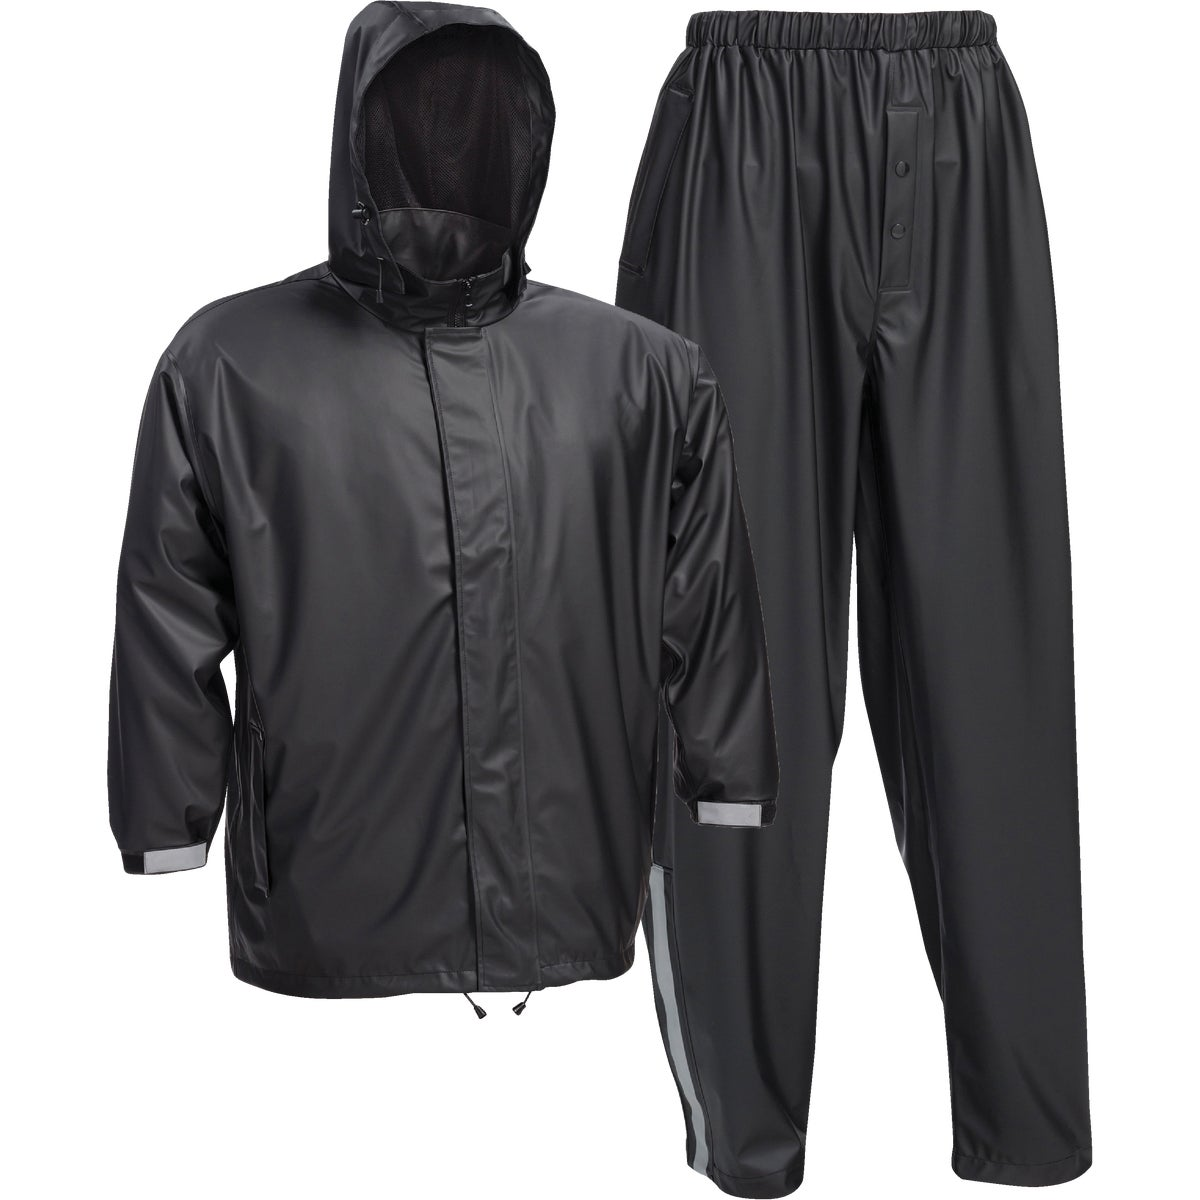 XL BLK NYLON RAINSUIT